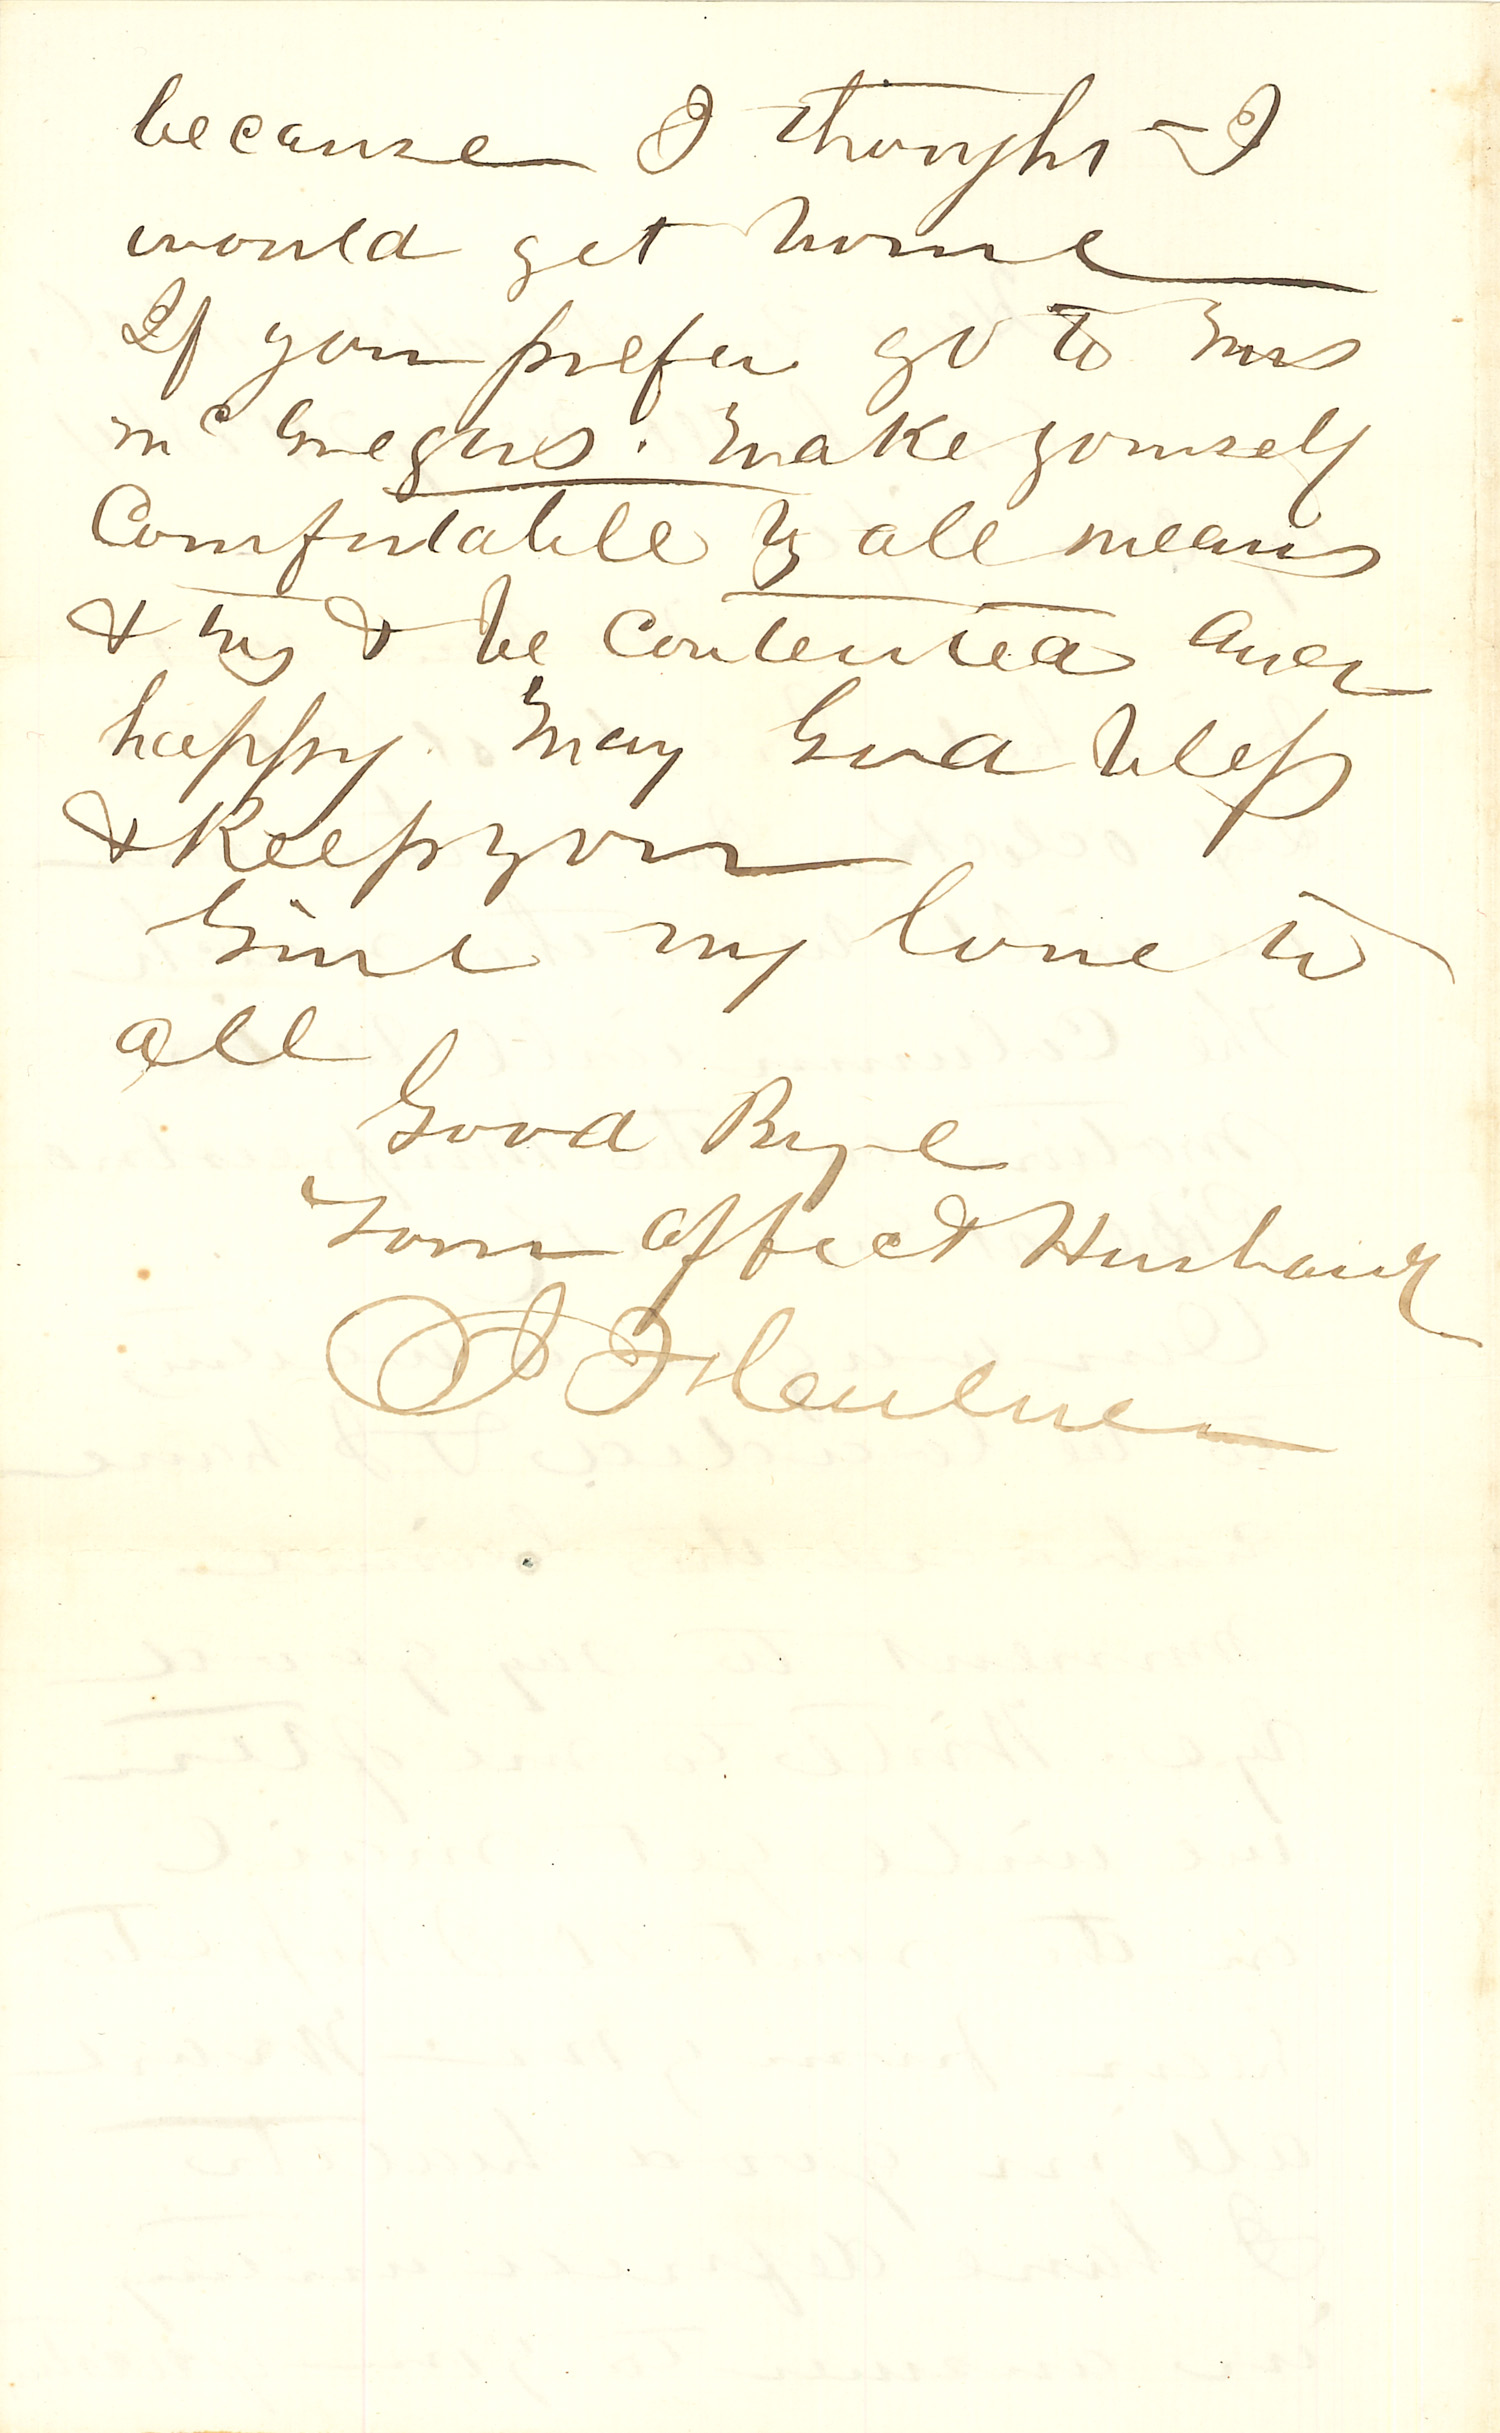 Joseph Culver Letter, February 24, 1864, Page 2